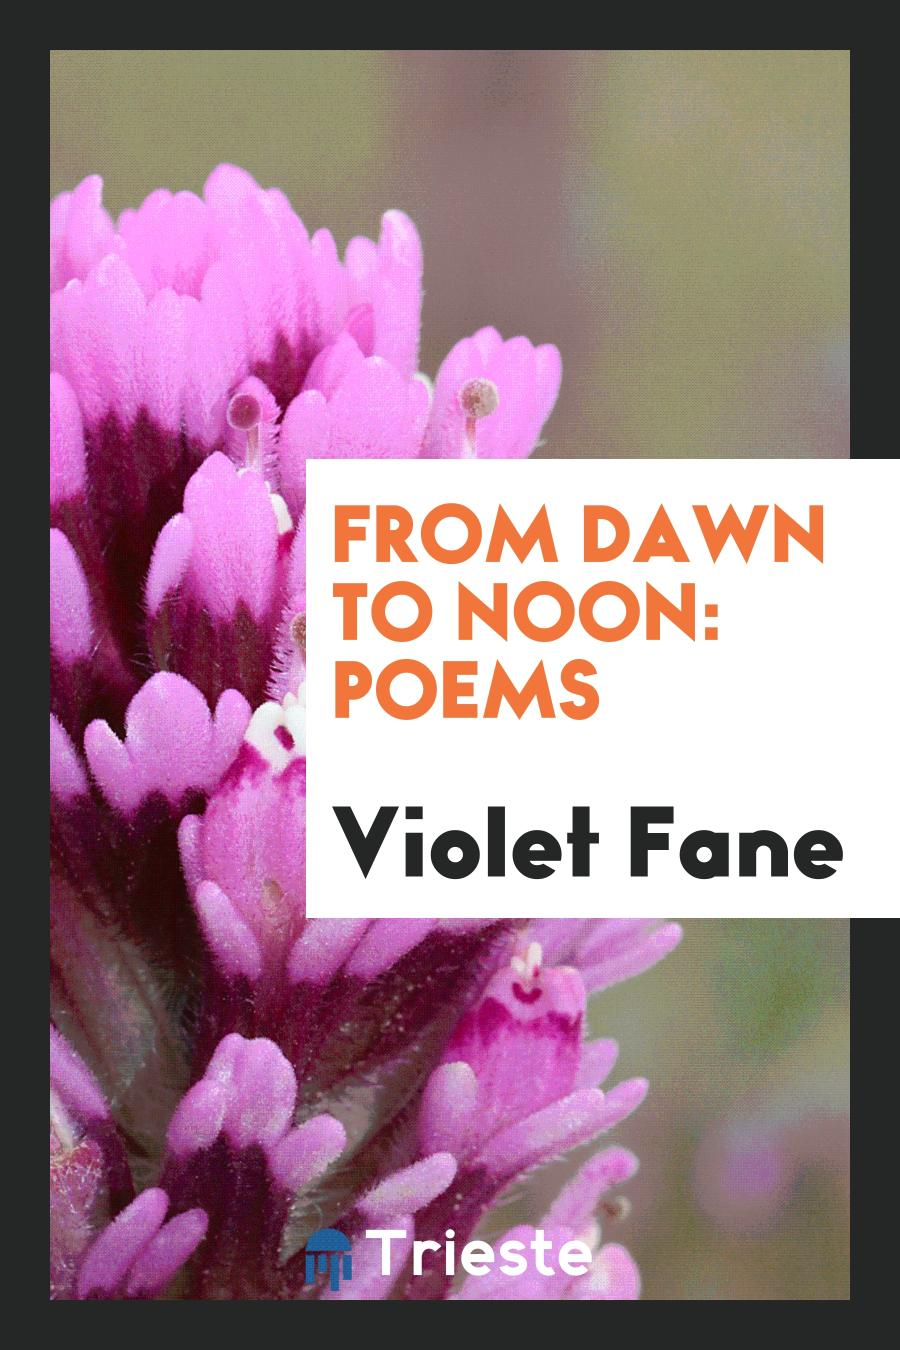 From Dawn to Noon: Poems